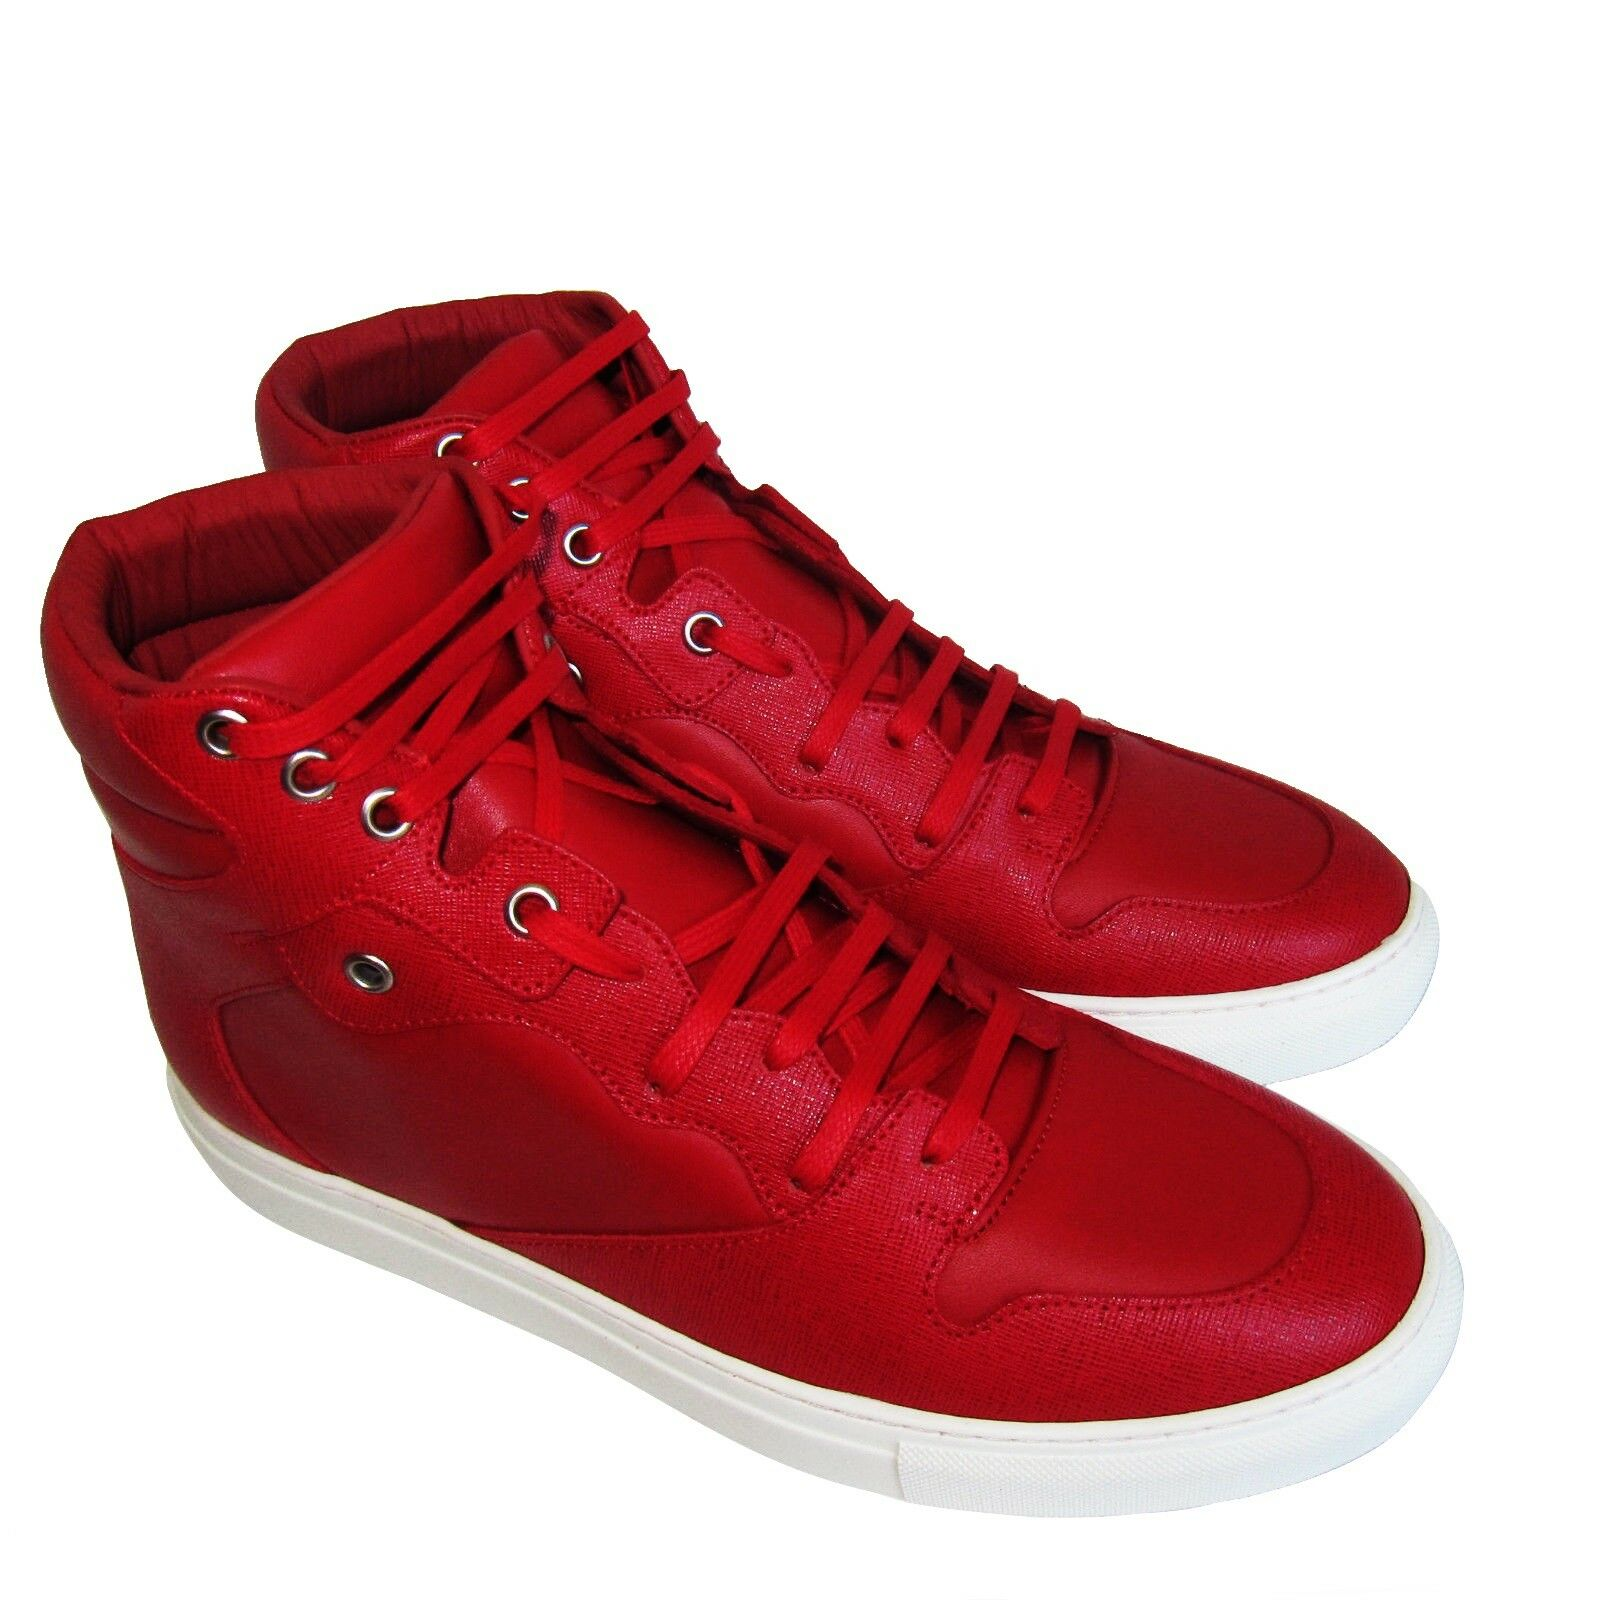 C-1622123 New Balenciaga Red Leather Hi Top Sneakers shoes Size Marked 40 US 7